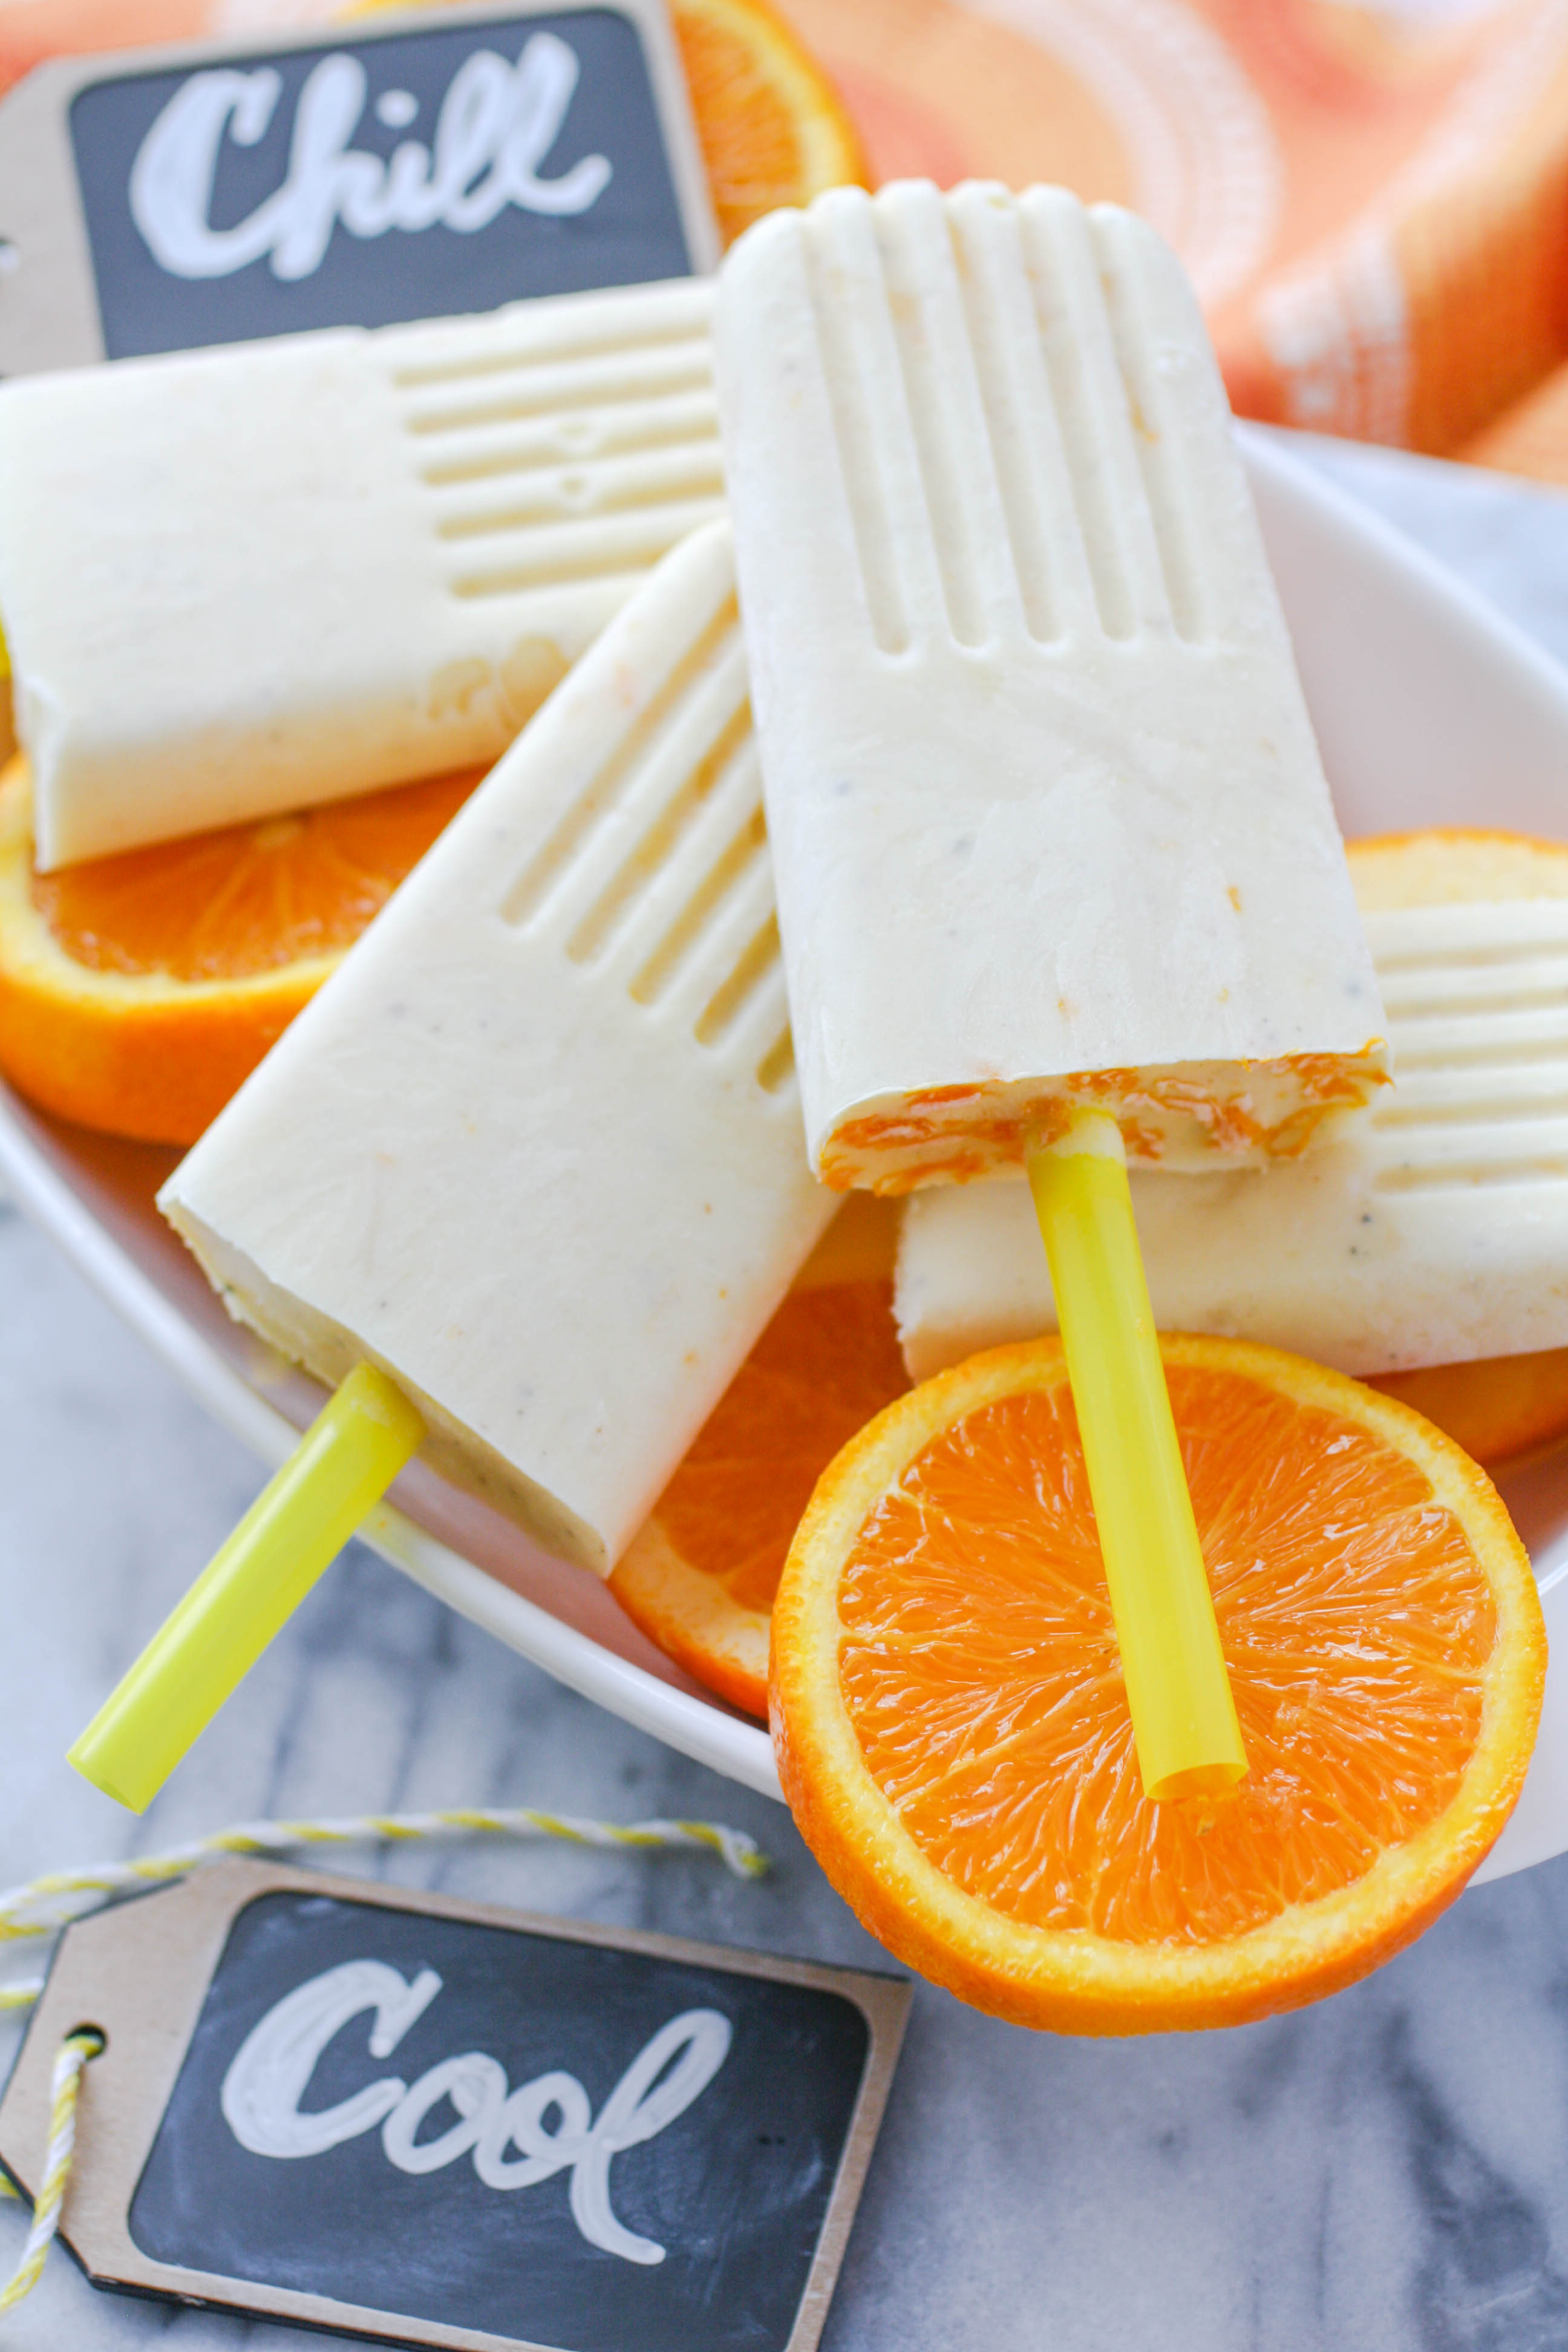 Pineapple-Orange & Cardamom Creamsicles are a fabulous frozen treat! Pineapple-Orange & Cardamom Creamsicles are frosty fun for the summer!